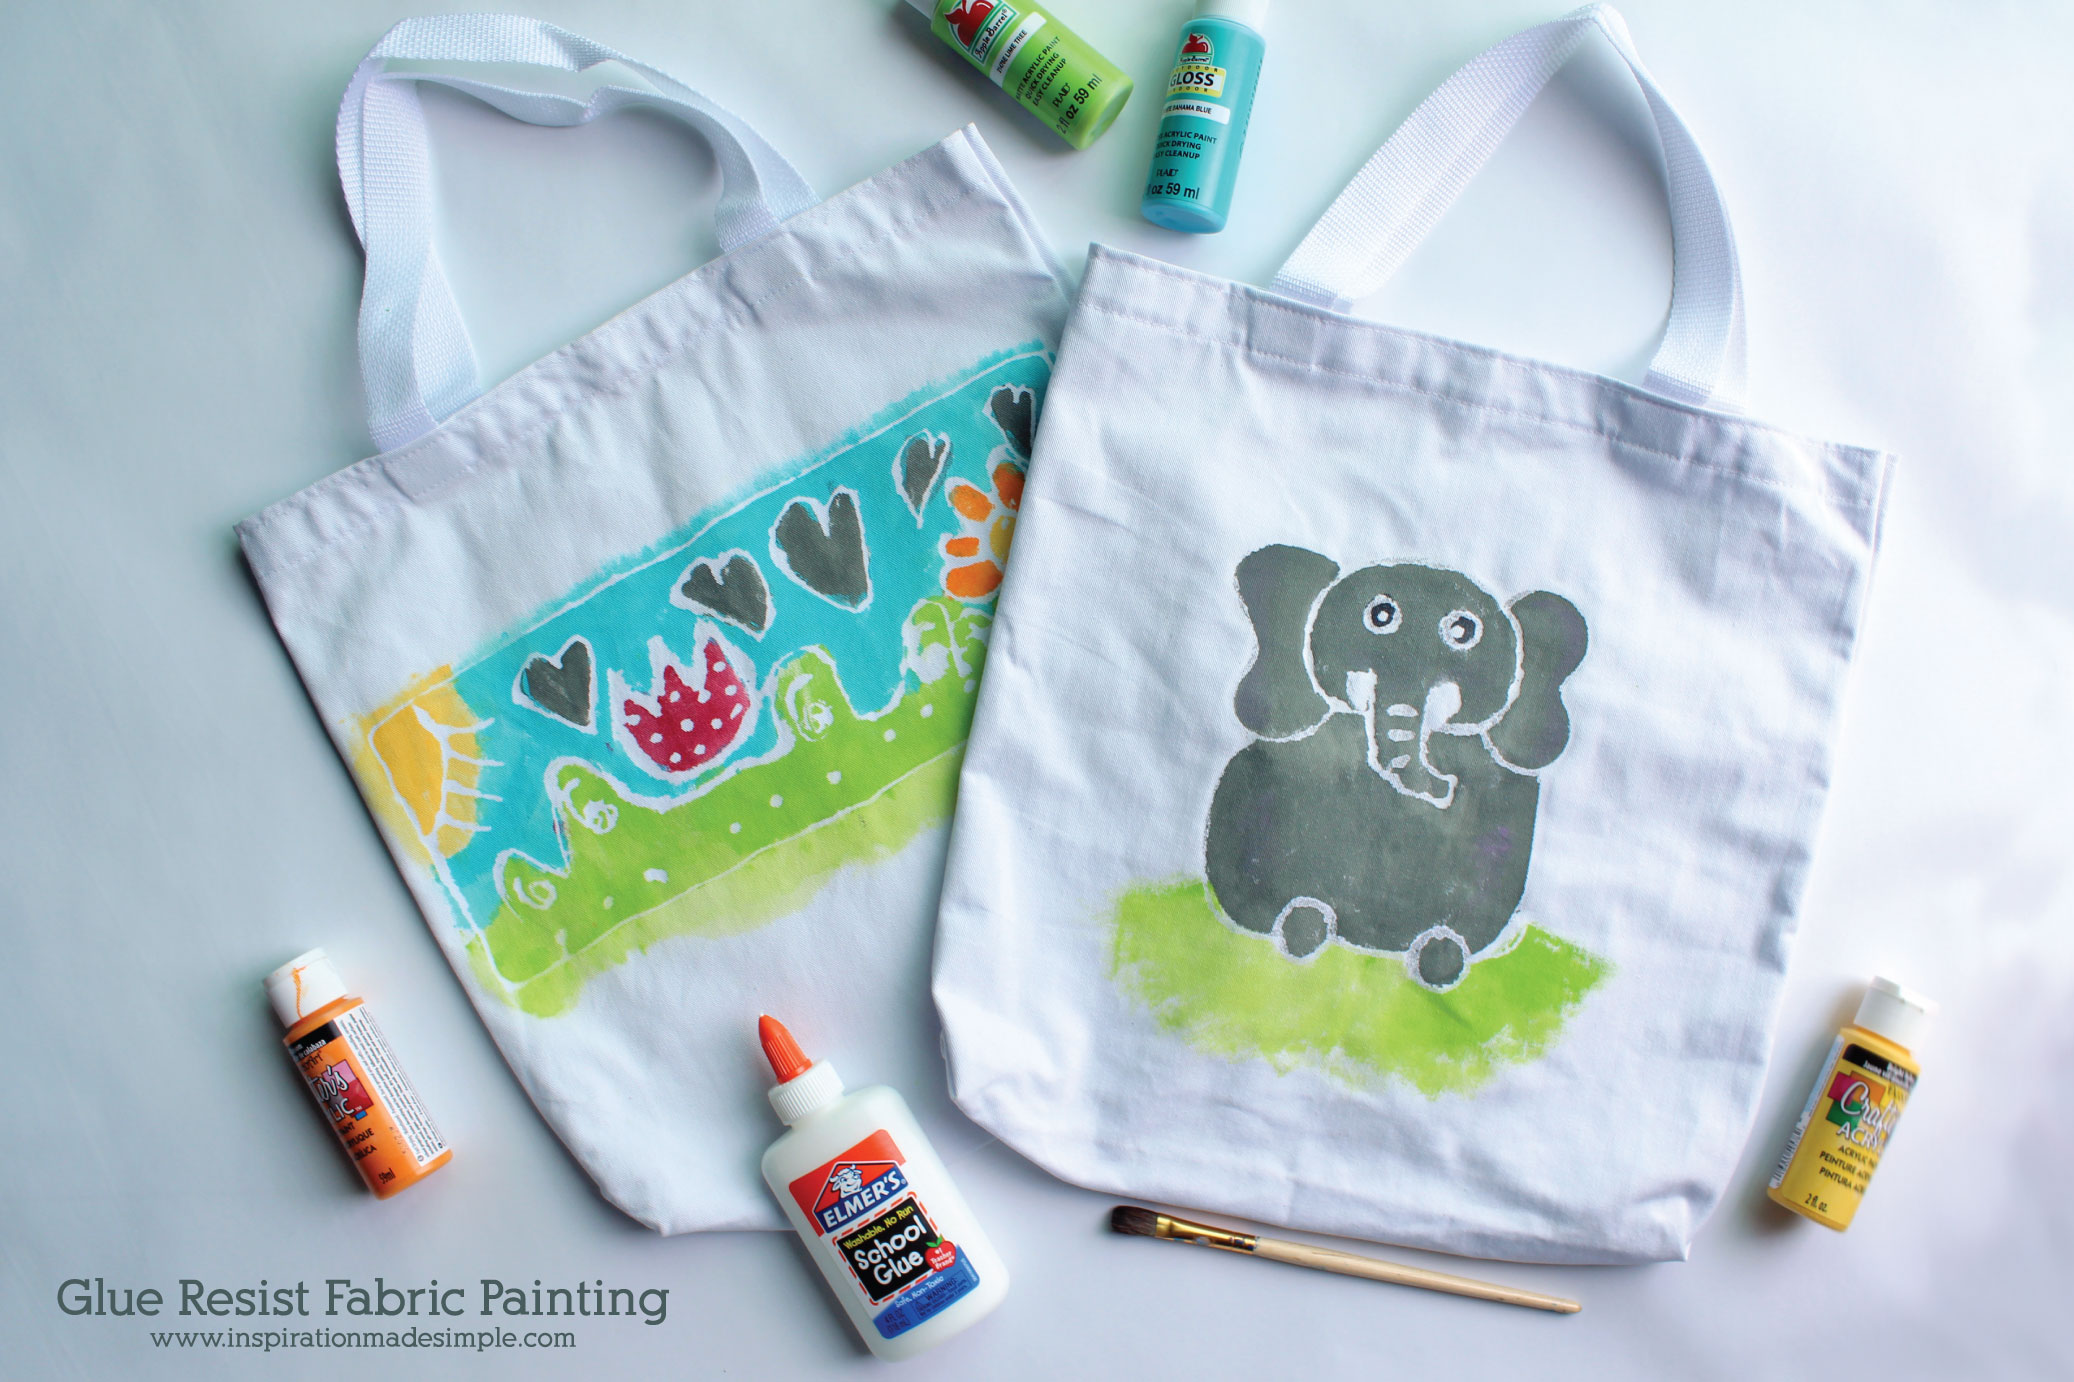 Glue Resist Fabric Painting Kids Craft Tutorial